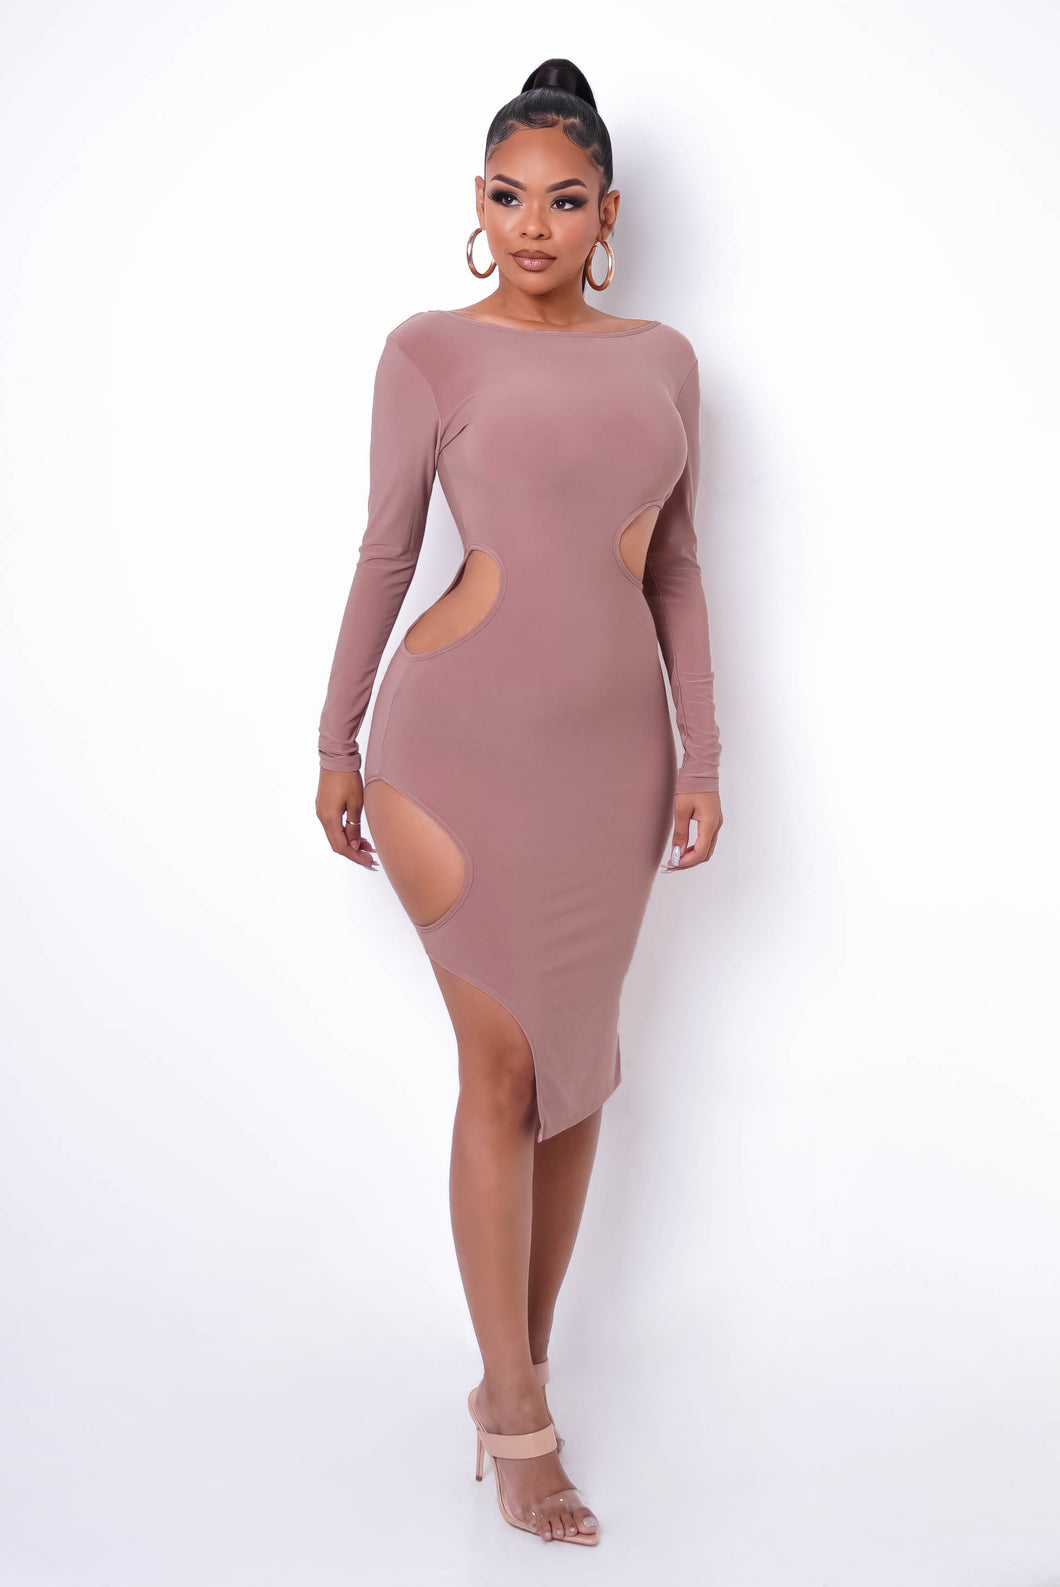 RESTOCK! Allegations Midi Dress - Taupe